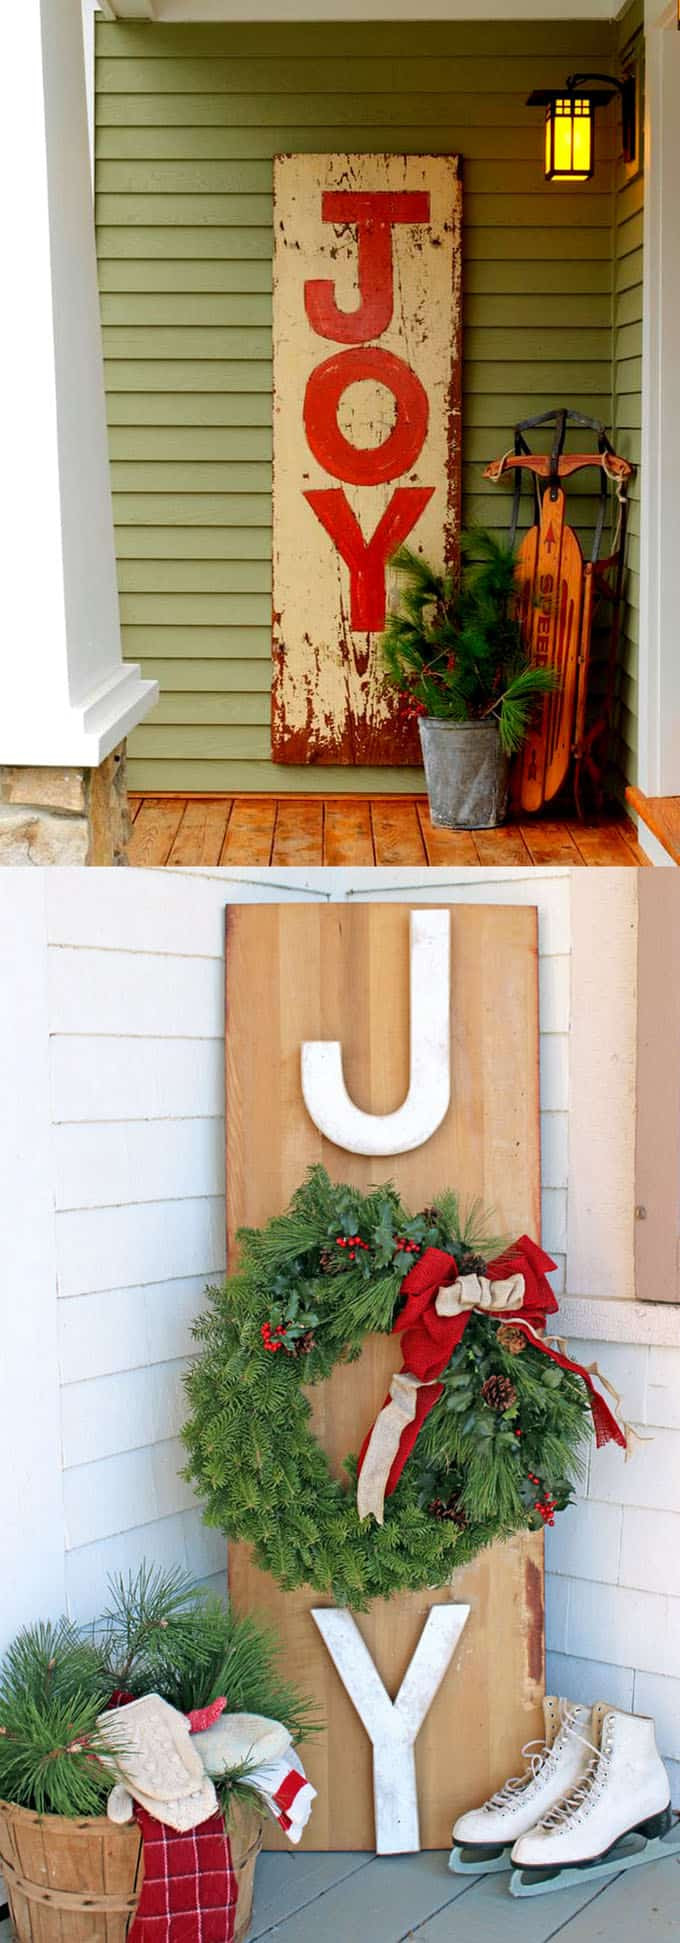 DIY Outdoor Christmas Lights  Gorgeous Outdoor Christmas Decorations 32 Best Ideas